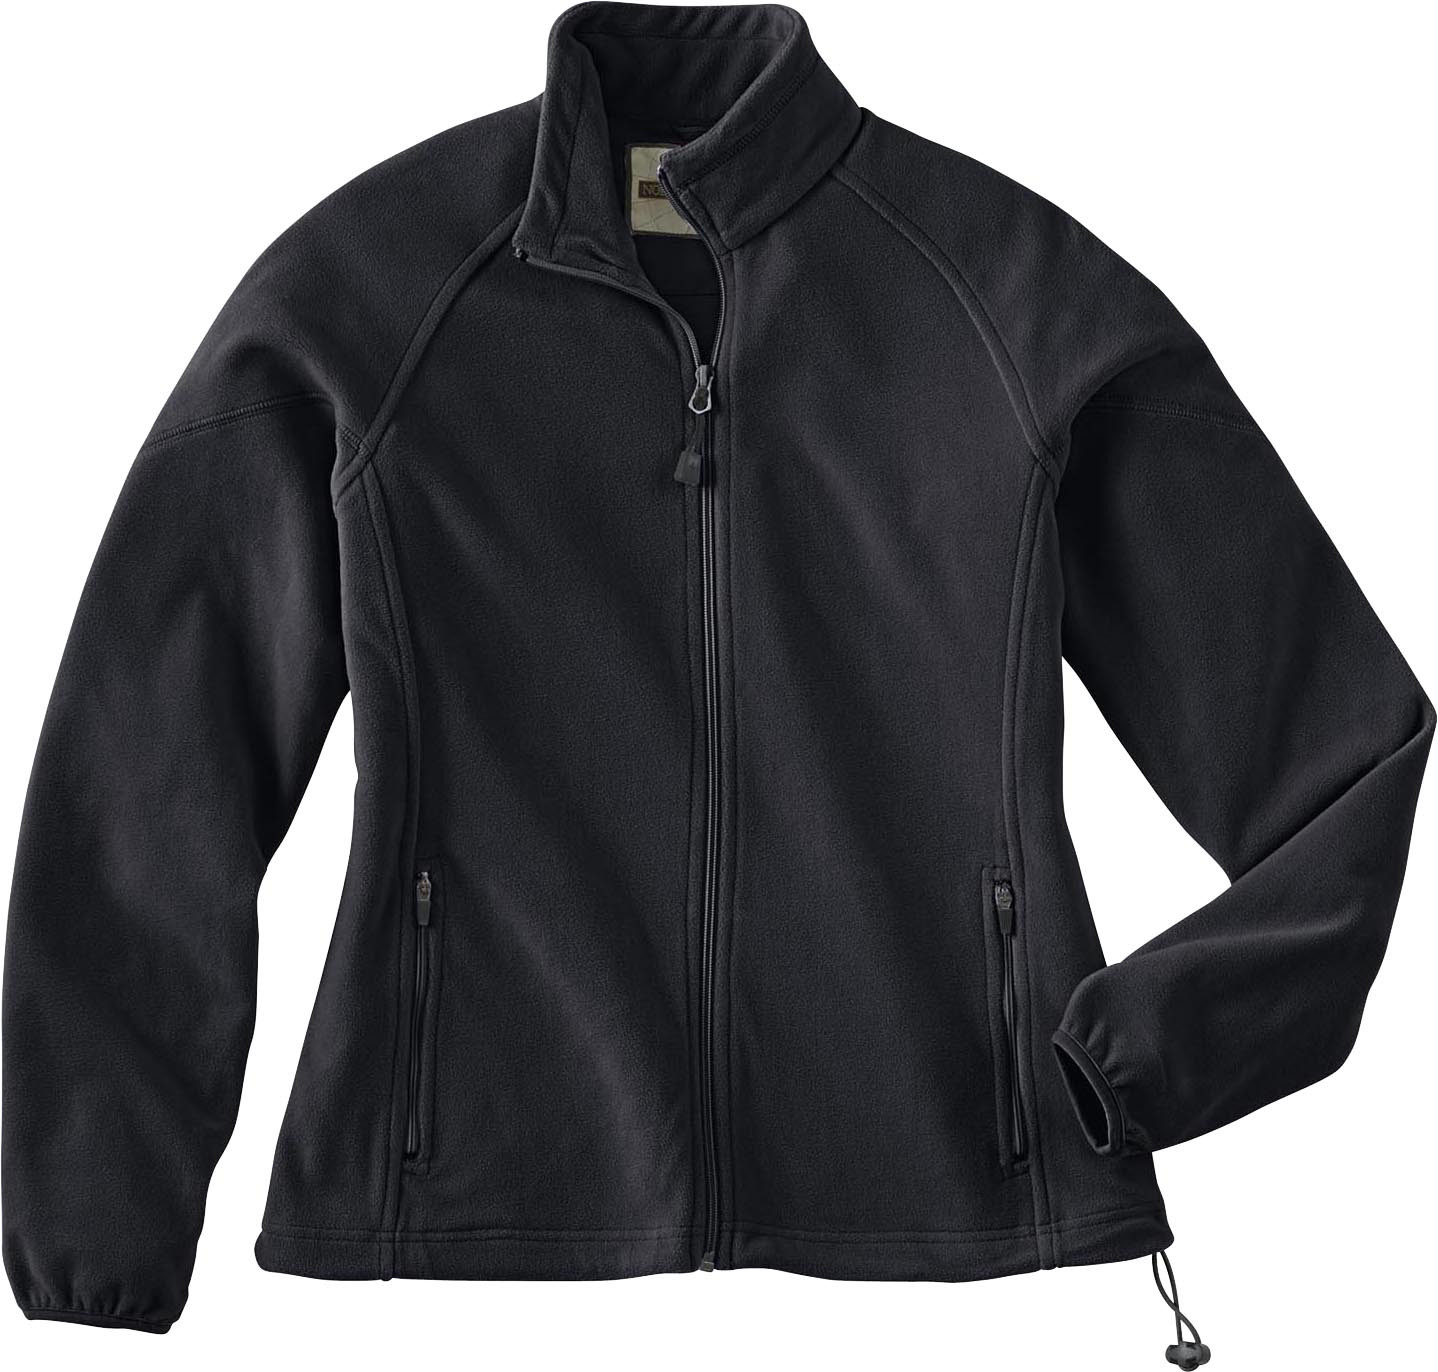 Ash City Microfleece 78025 - Ladies' Microfleece Unlined Jacket